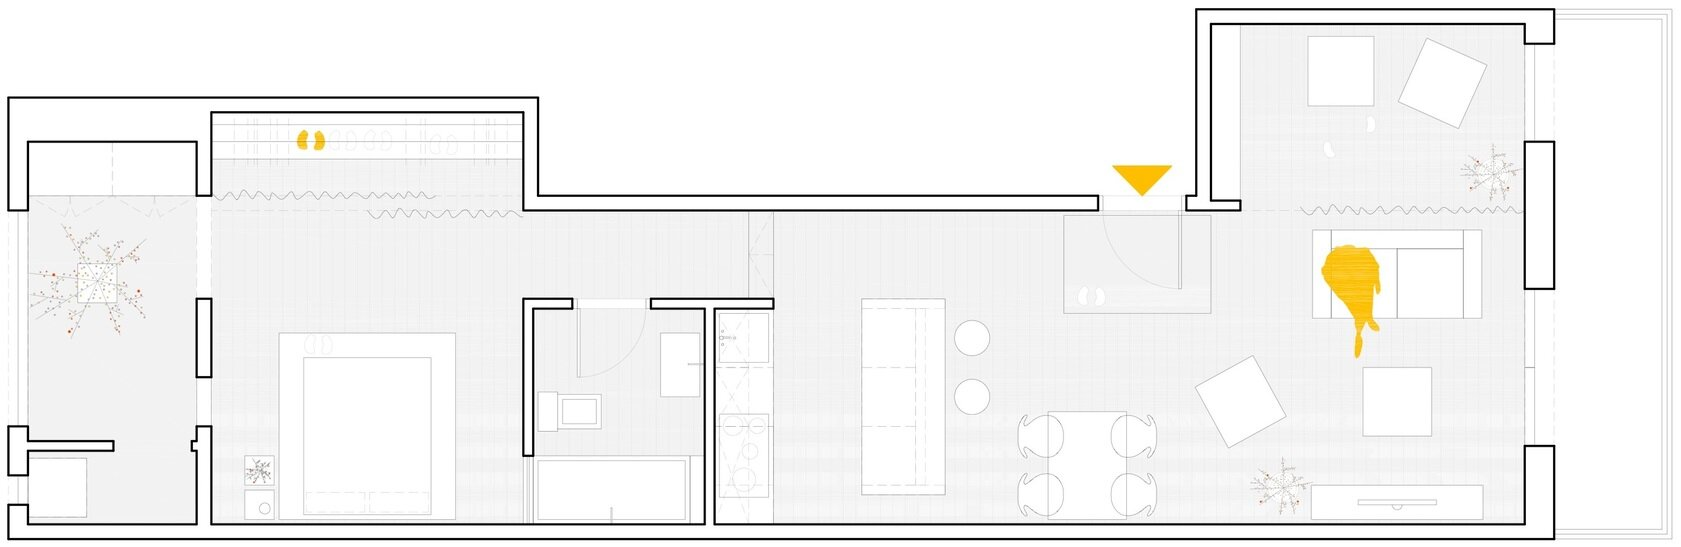 Les Corts - Apartment Renovation - Sergi Pons - Barcelona - Spain - Floor Plan - Humble Homes